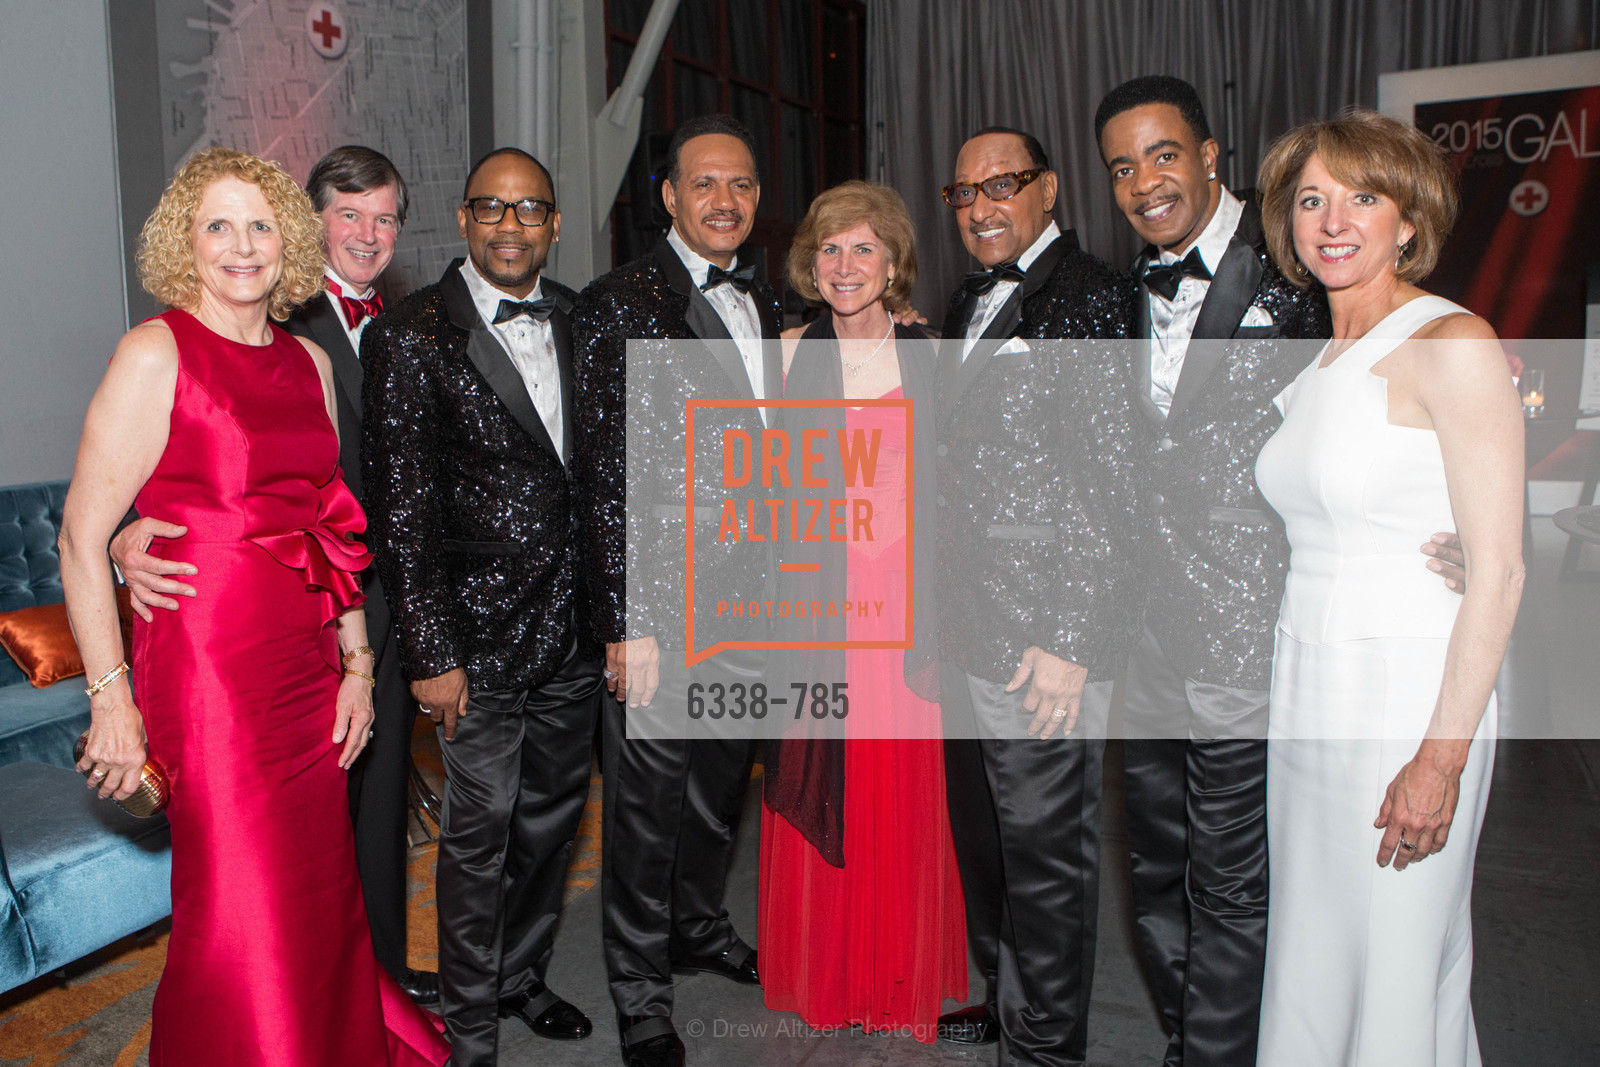 Sarah Earley, Anthony Earley, Lawrence Payton, Ronnie McNair, Gail McGovern, Duke Fakir, Spike Bonhart, Teresa Briggs, 2015 RED CROSS Gala, US, April 11th, 2015,Drew Altizer, Drew Altizer Photography, full-service agency, private events, San Francisco photographer, photographer california